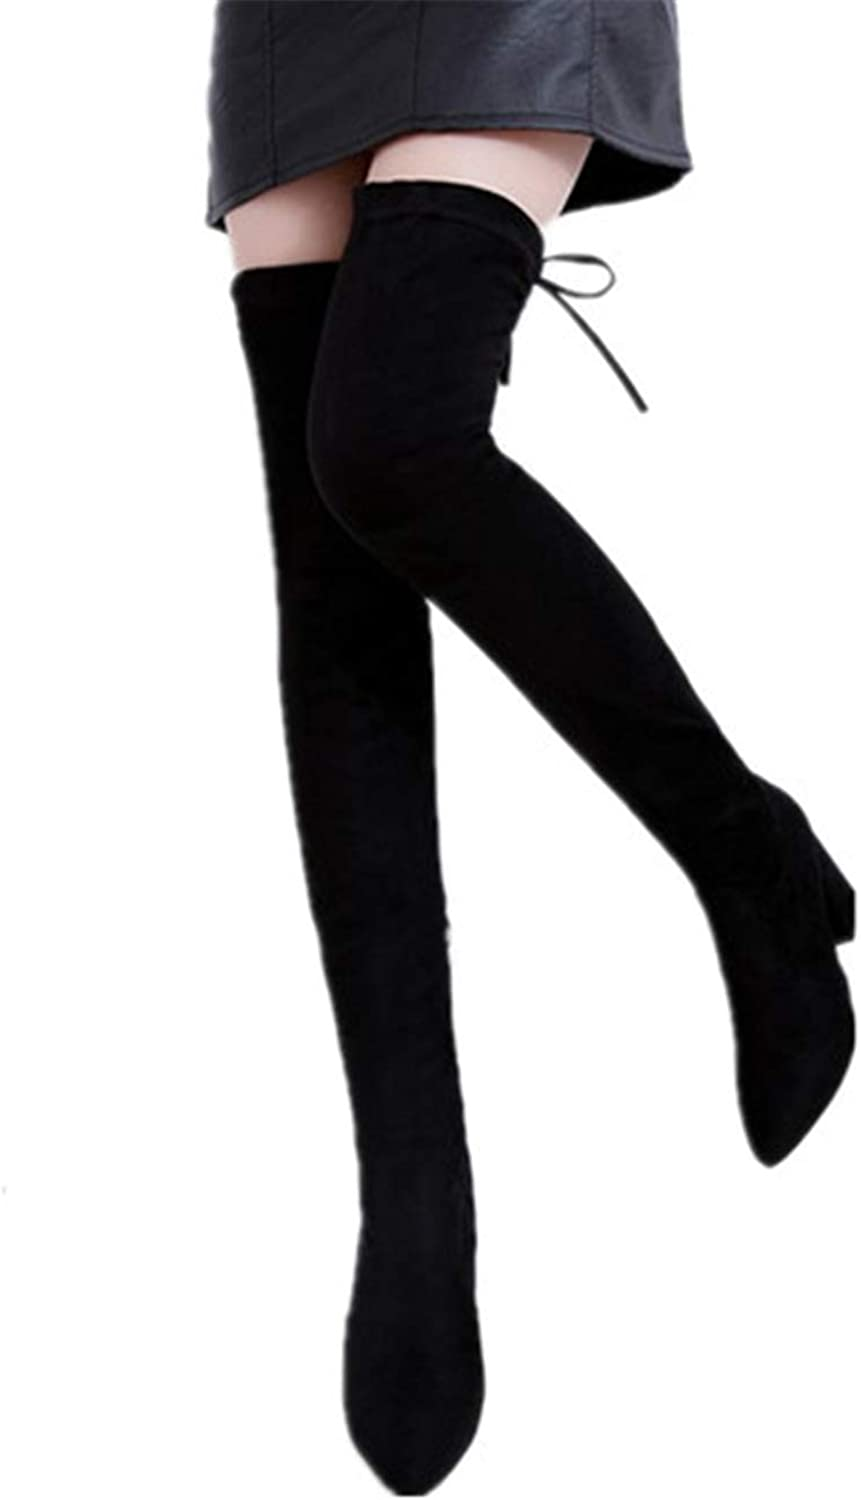 Smart.A Womens Fashion Stylish Pull On Over Knee High Sexy Boots